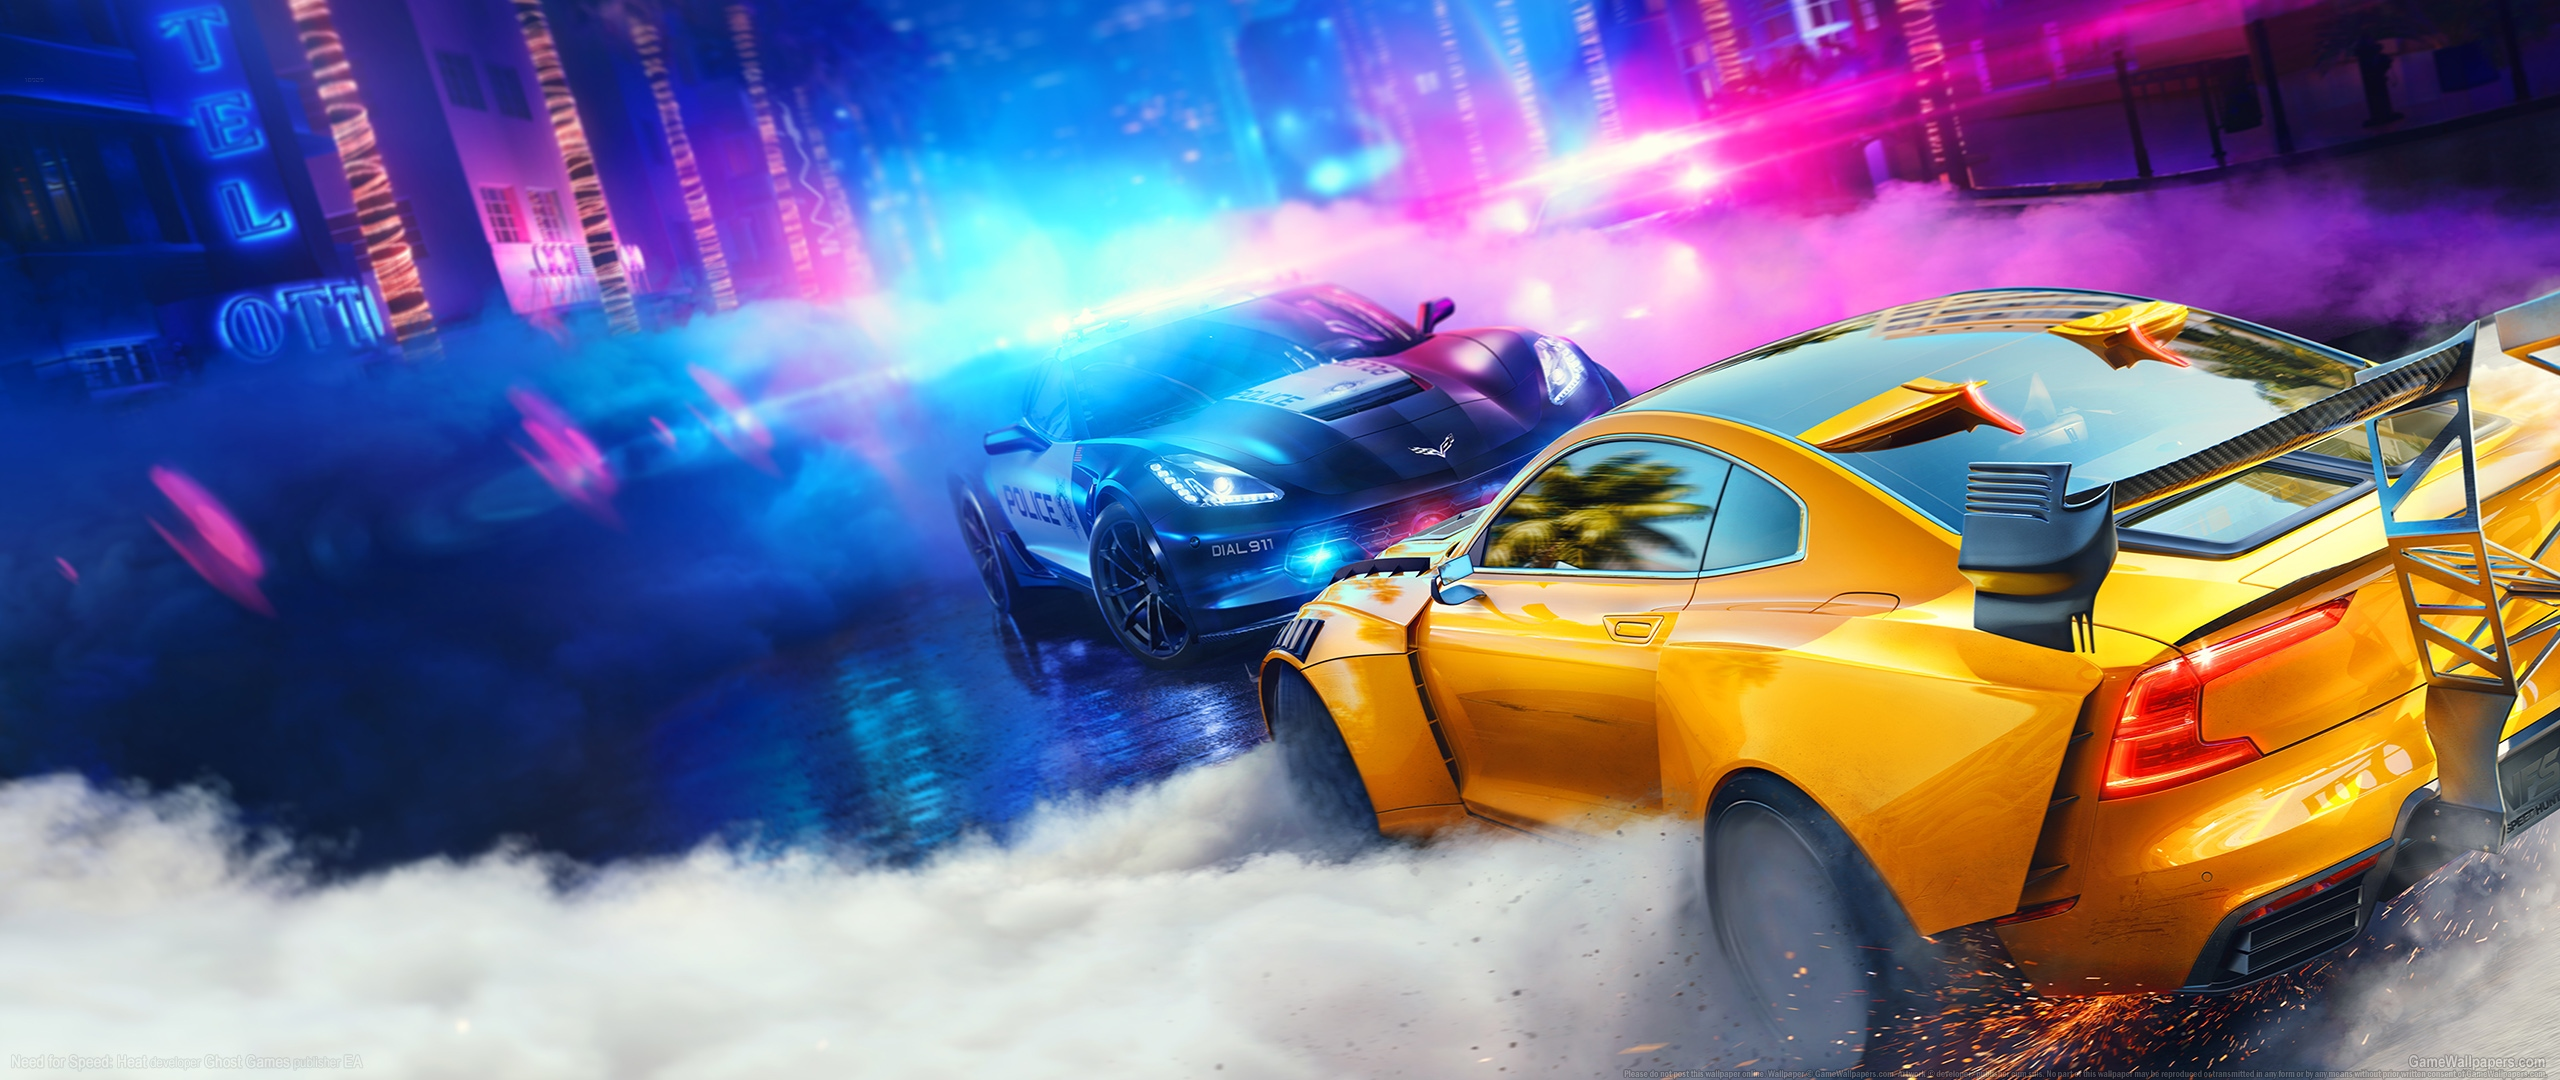 Need for Speed: Heat 2560x1080 Hintergrundbild 01